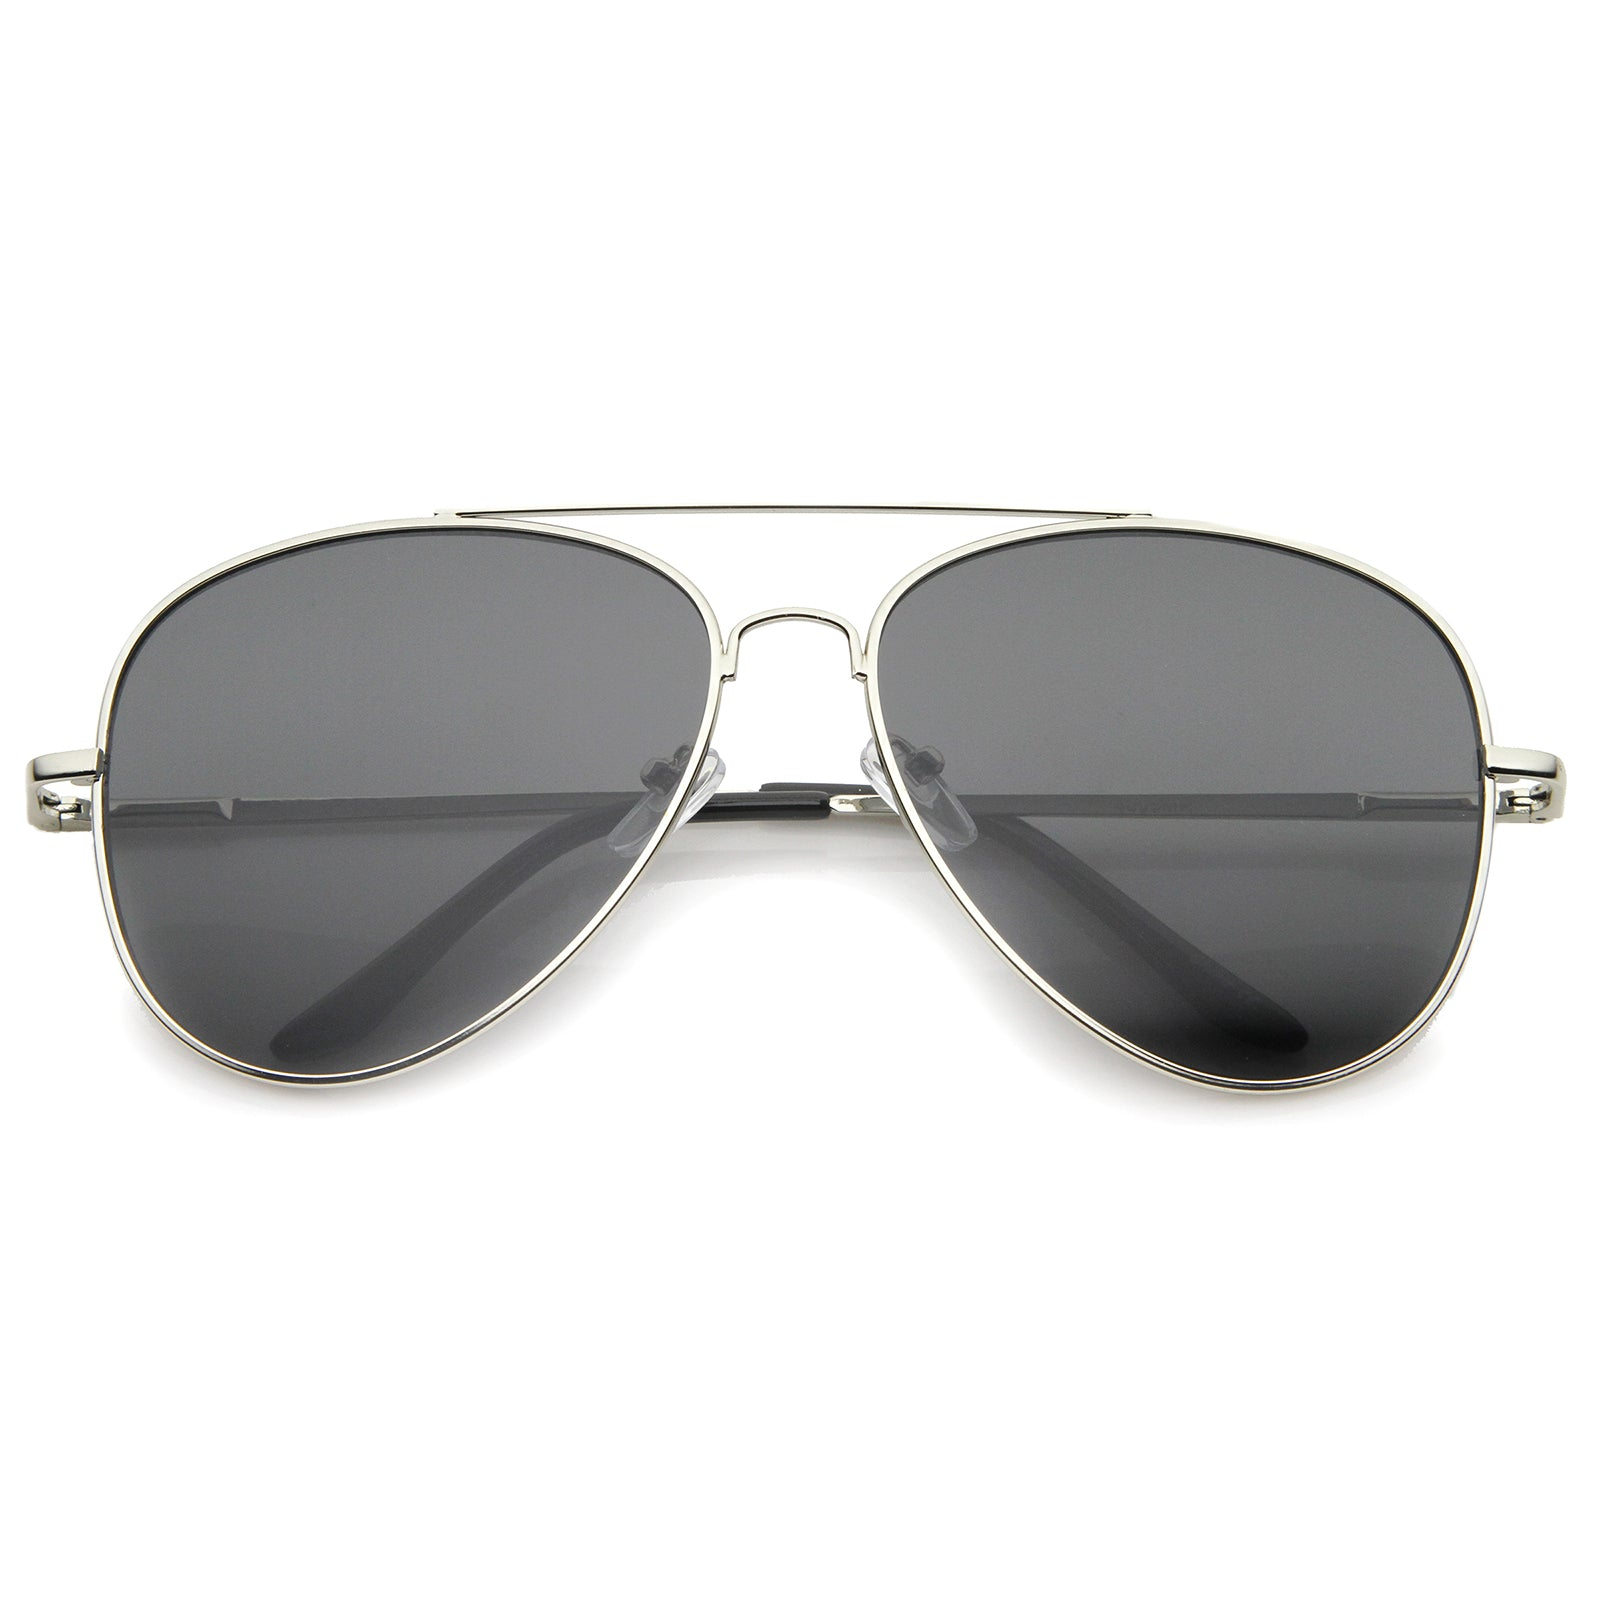 Large Classic Full Metal Teardrop Flat Lens Aviator Sunglasses 60mm - sunglass.la - 8